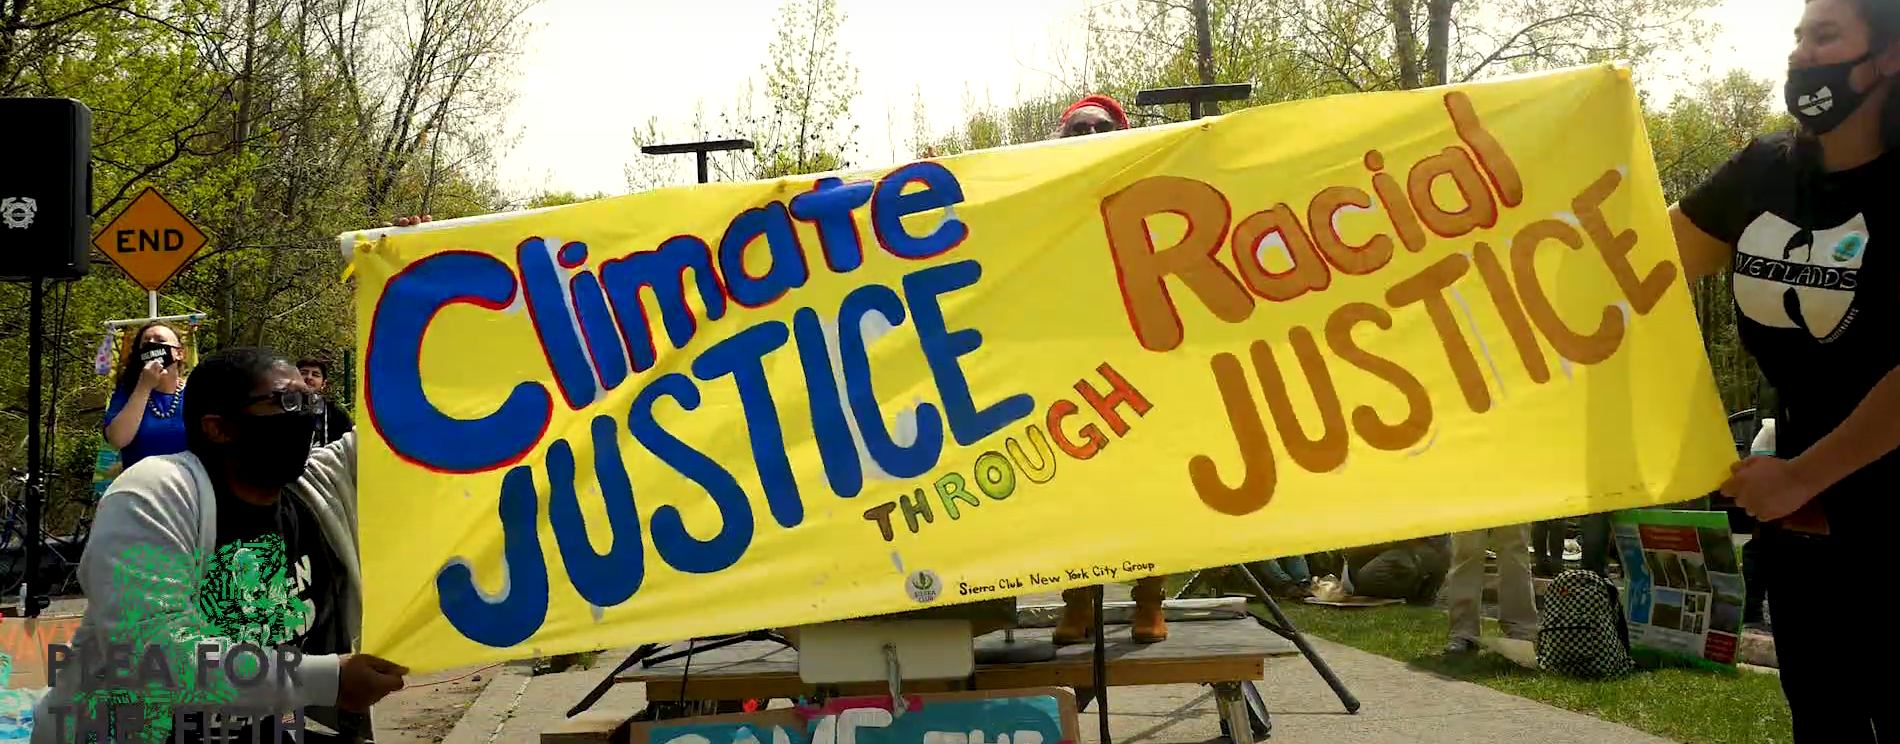 Two people holding either end of a yellow banner that reads Climate JUSTICE Through Racial JUSTICE in front of the stage.